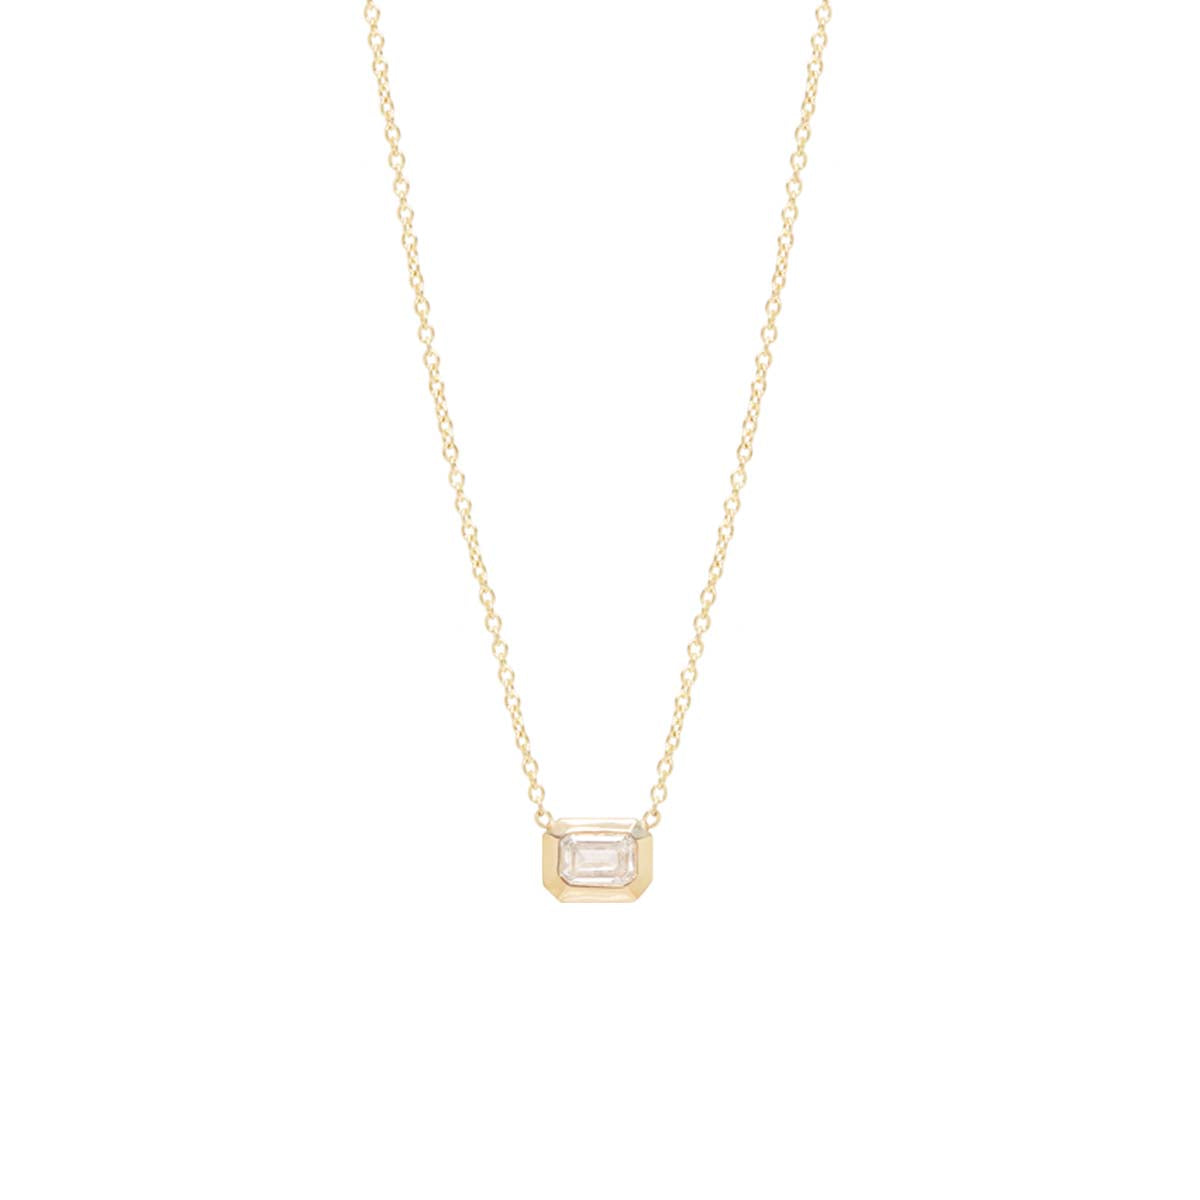 14k small emerald cut diamond necklace